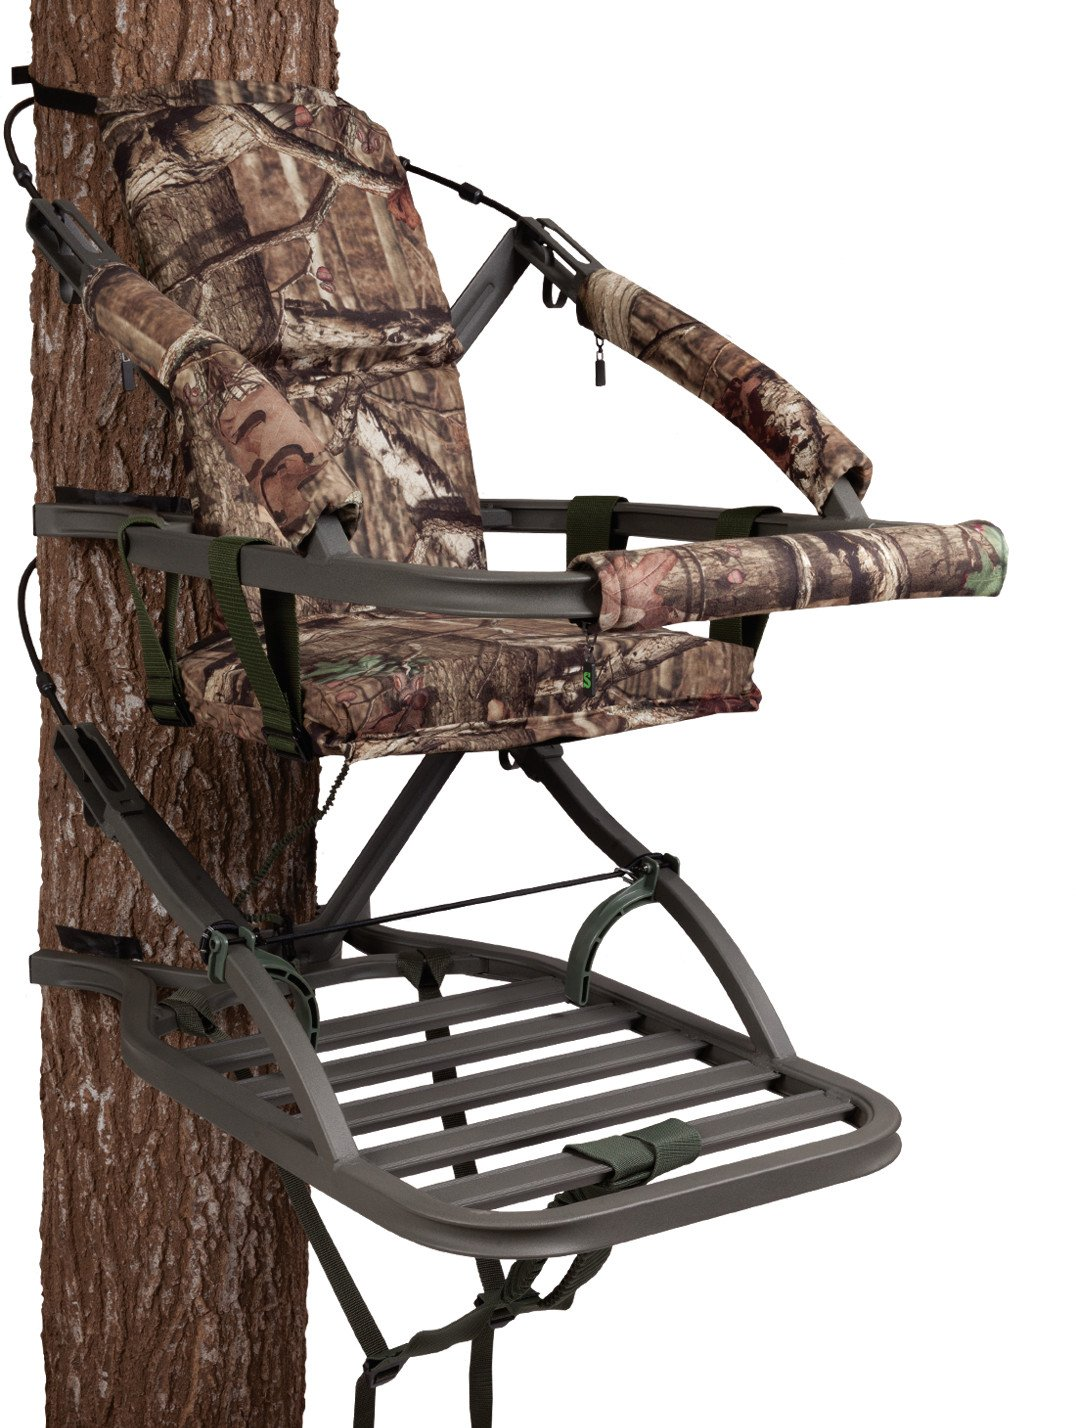 Summit Treestands 81120 Viper SD Climbing Treestand, Mossy Oak by Summit Treestands (Image #1)